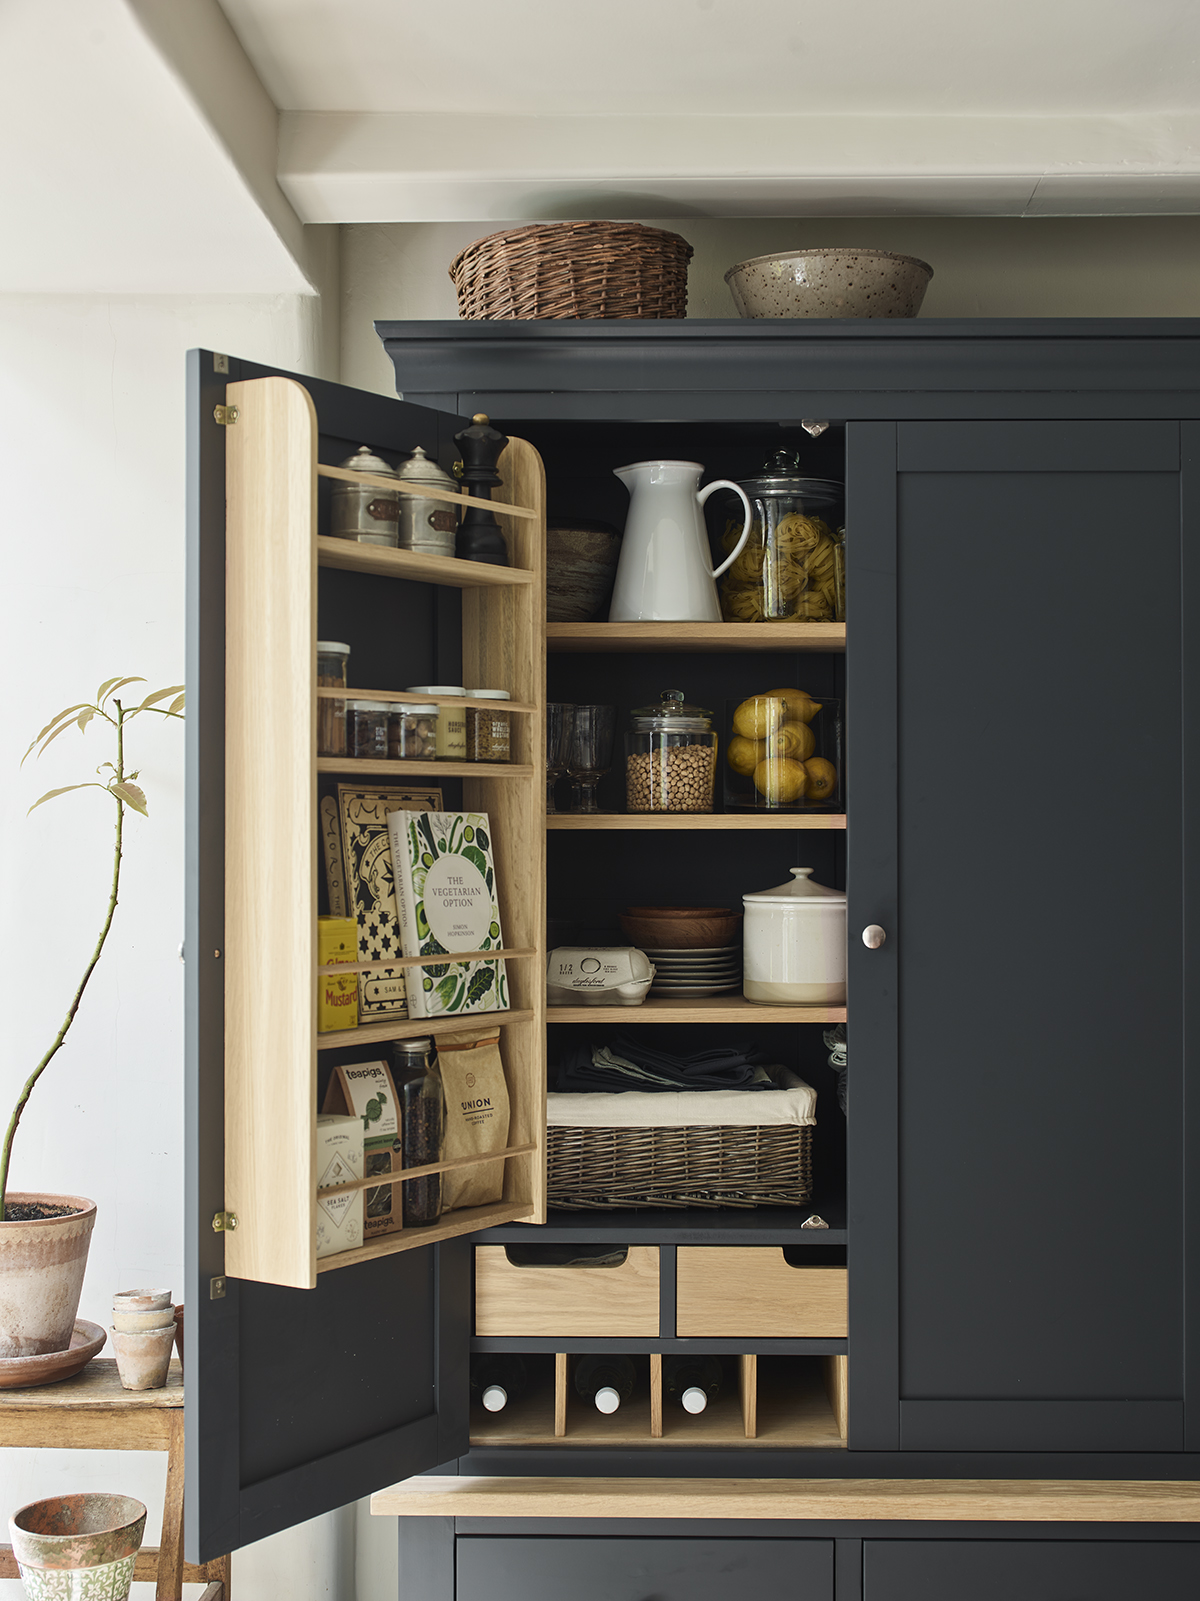 Our larders and pantries offers an abundance of storage behind double doors